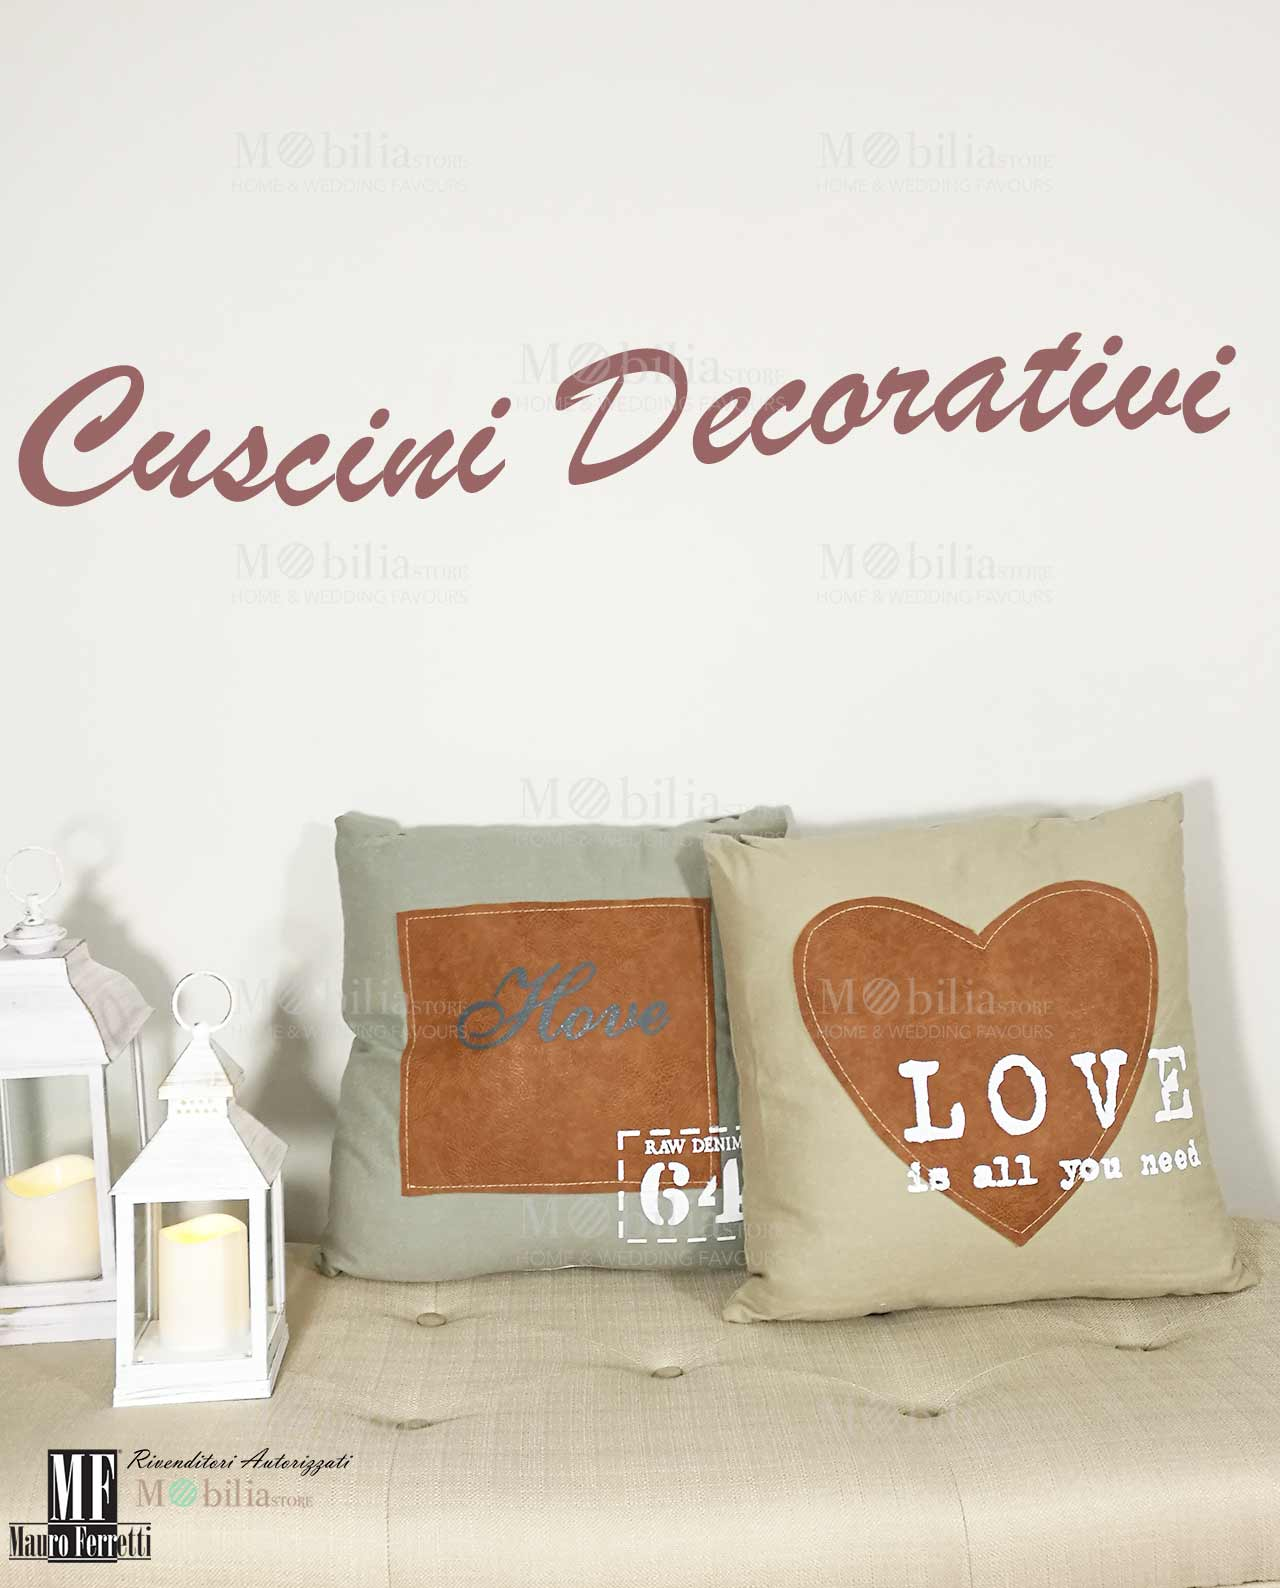 Cuscini decorativi per divani